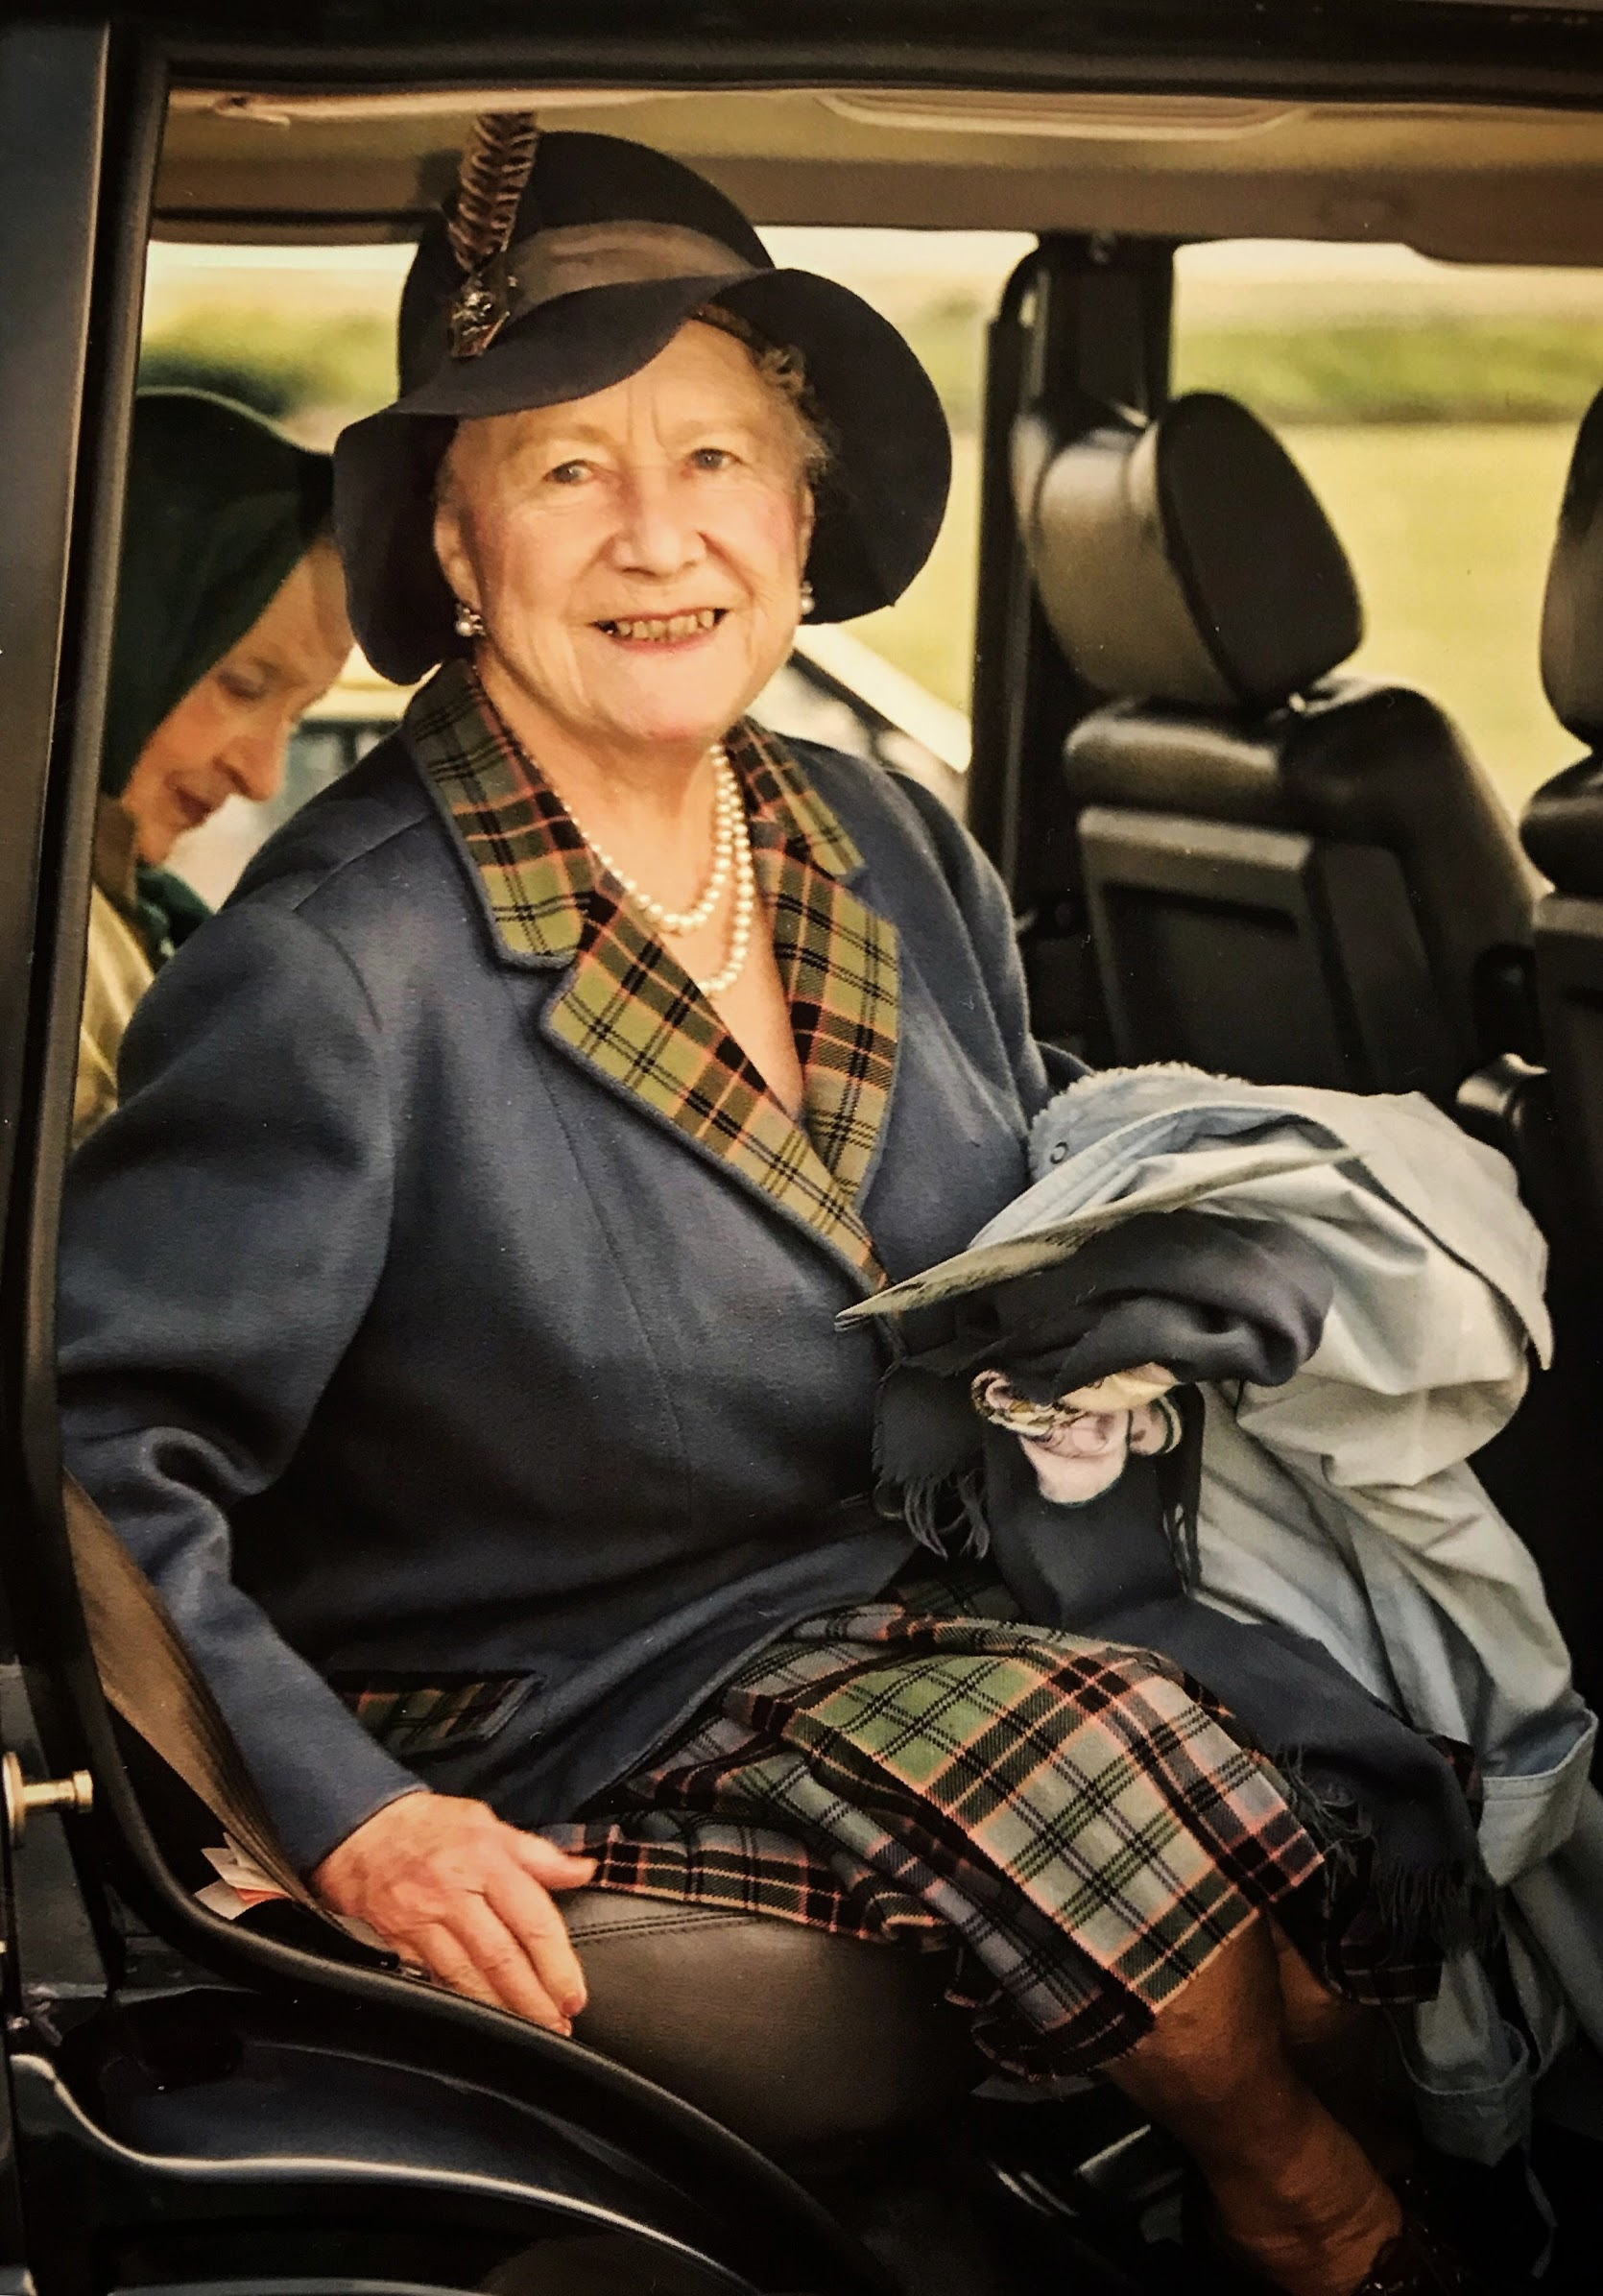 This was taken whilst the Queen Mother was on holiday at the Castle of Mey in August, 1992. She had turned up to watch the local sheep dog trials and support the event. As ever she was a dream to photograph, turning in her car seat to ensure l got the shot. She had a wonderful knack of making you feel very special and each time I was lucky enough to meet her, she was effortlessly charming. Photographer: David Butler